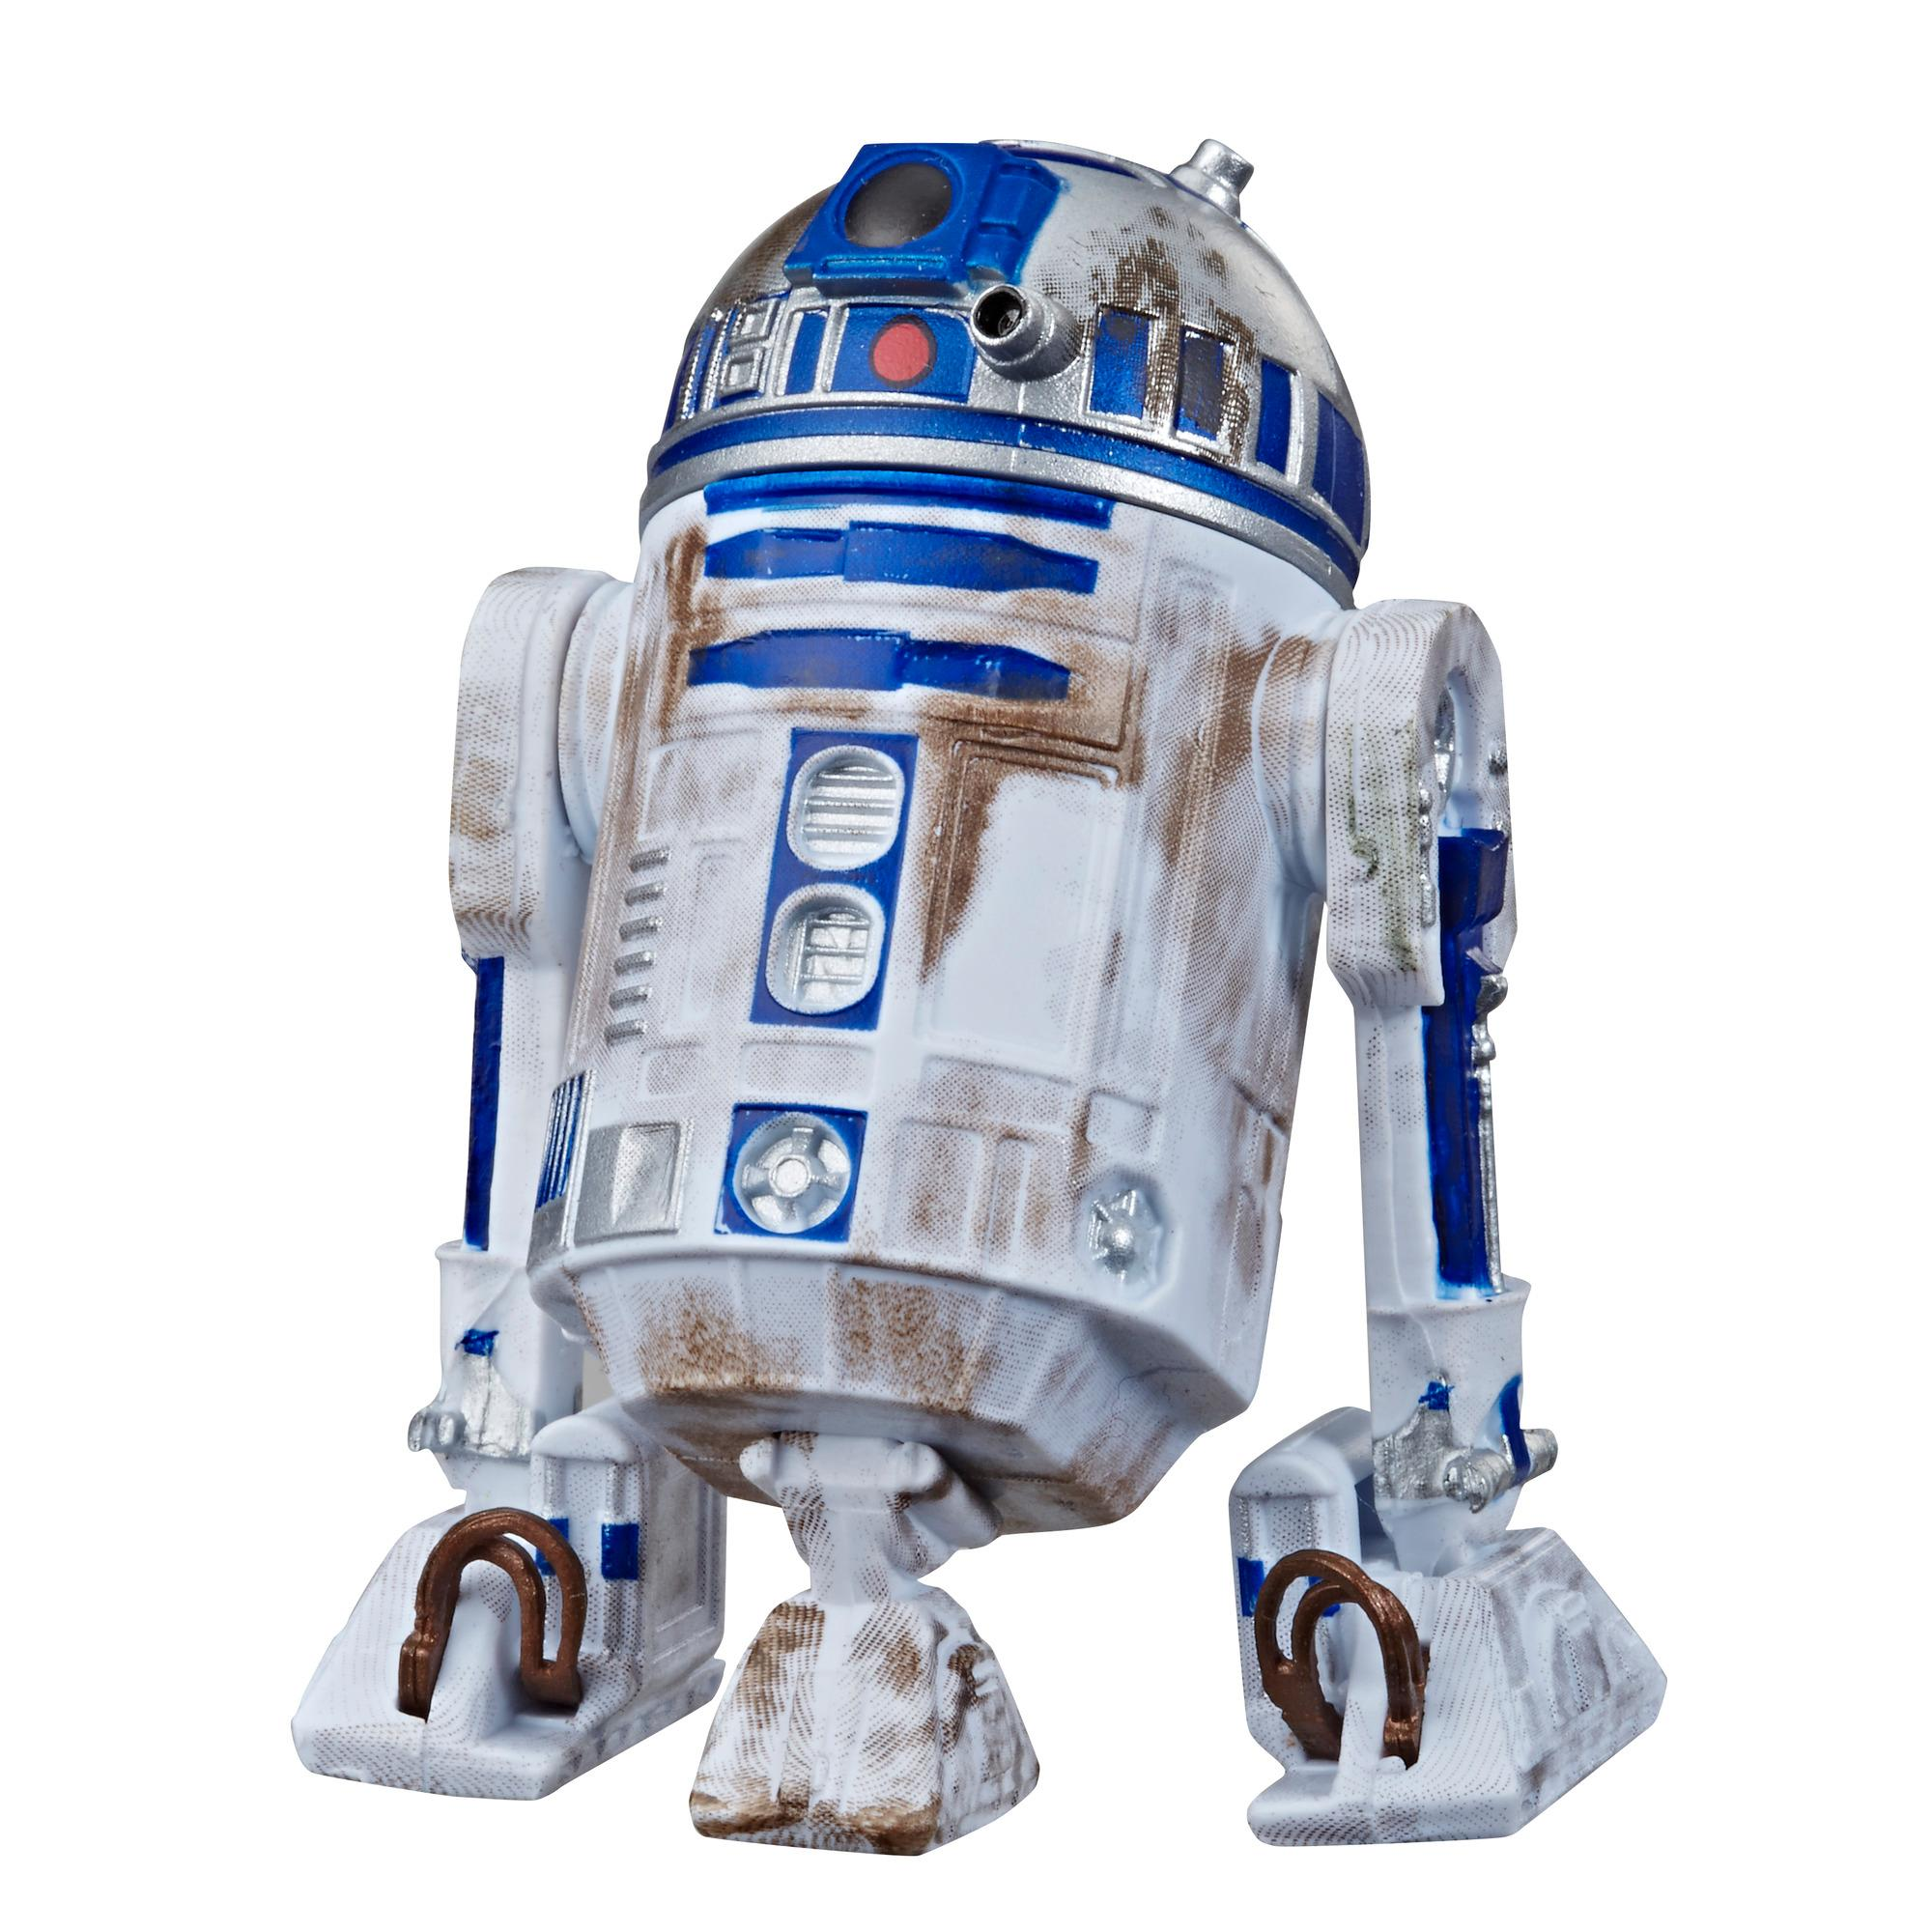 Star Wars The Vintage Collection Episode IV: A New Hope Artoo-Detoo (R2-D2) 3.75-Inch-Scale Action Figure